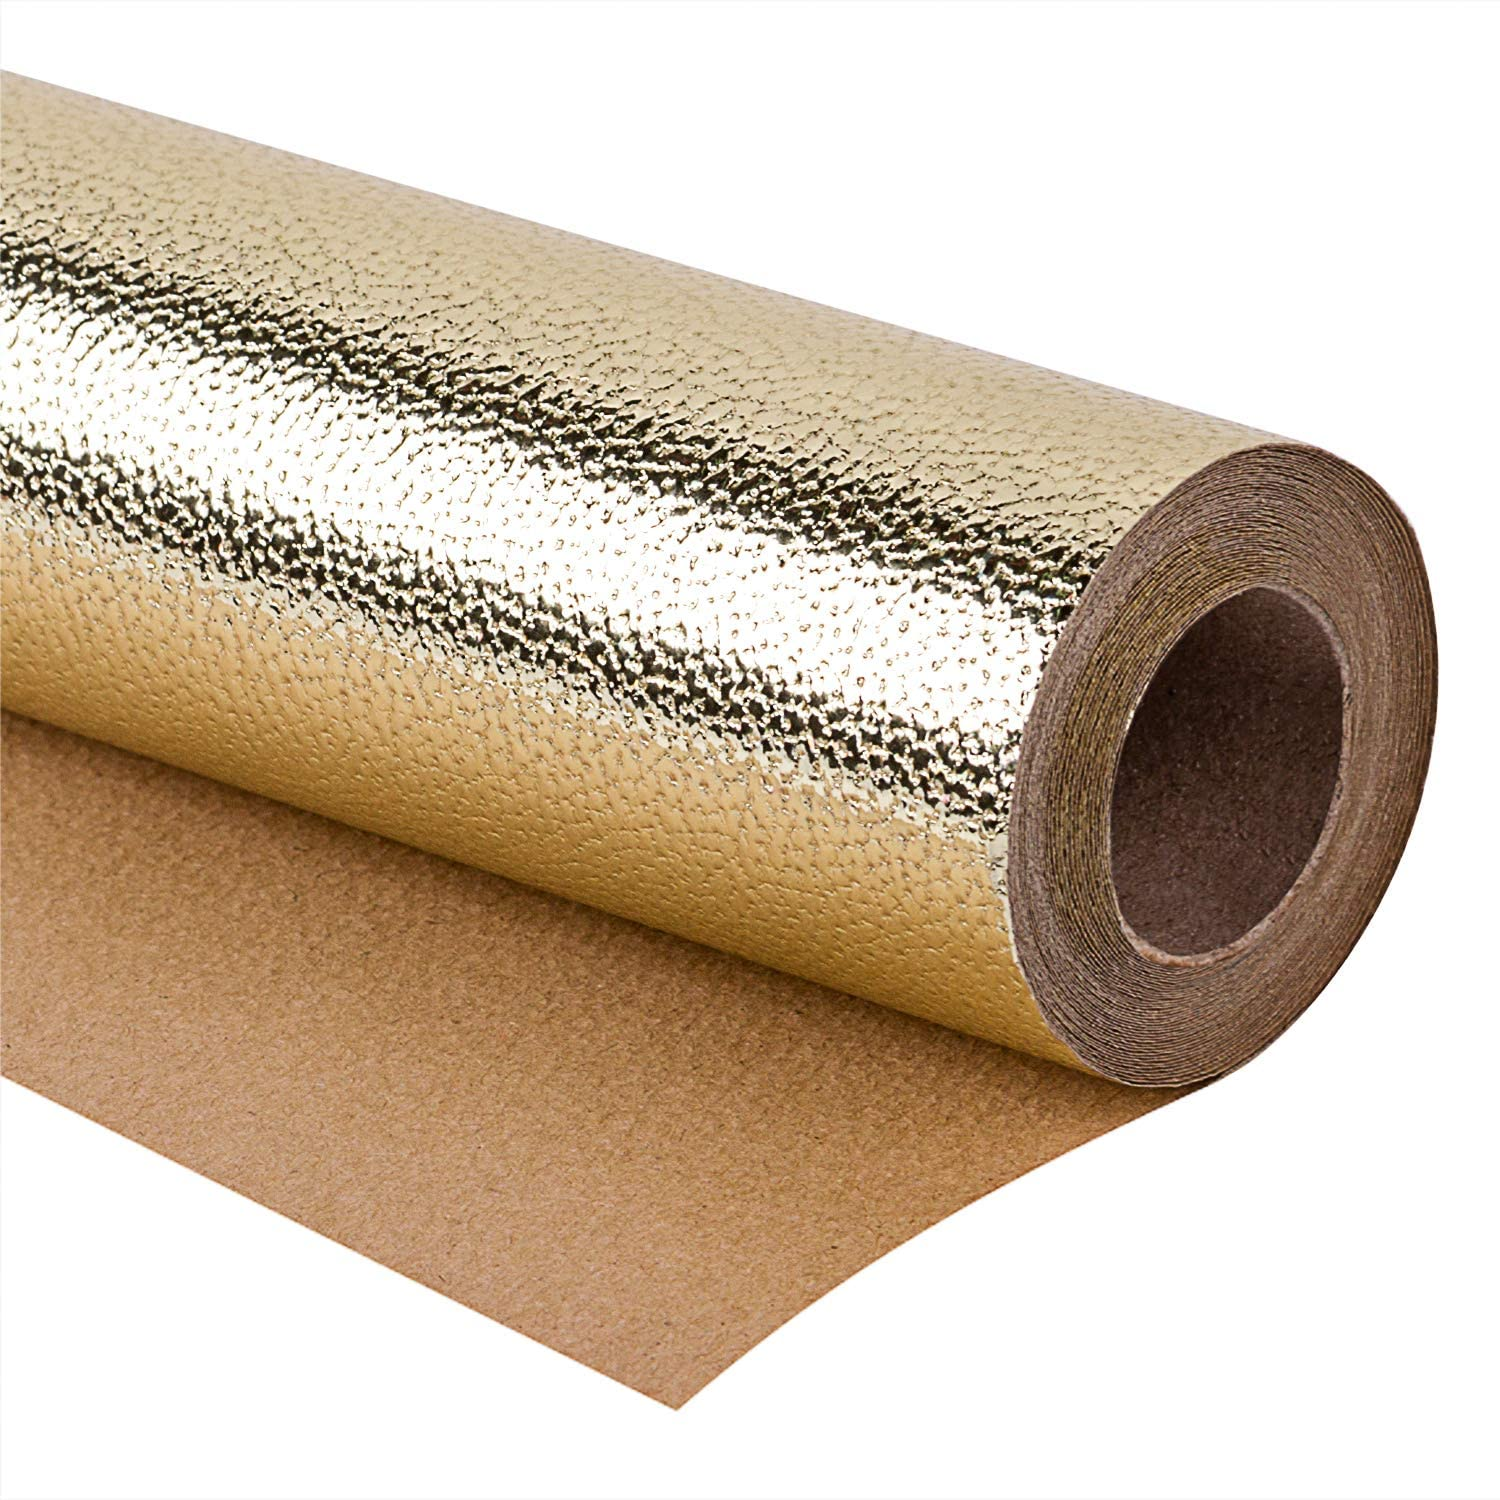 GOLD Glitter sparkle gift wrapping Paper perfect for Christmas-69x49cm-Xmas wrap